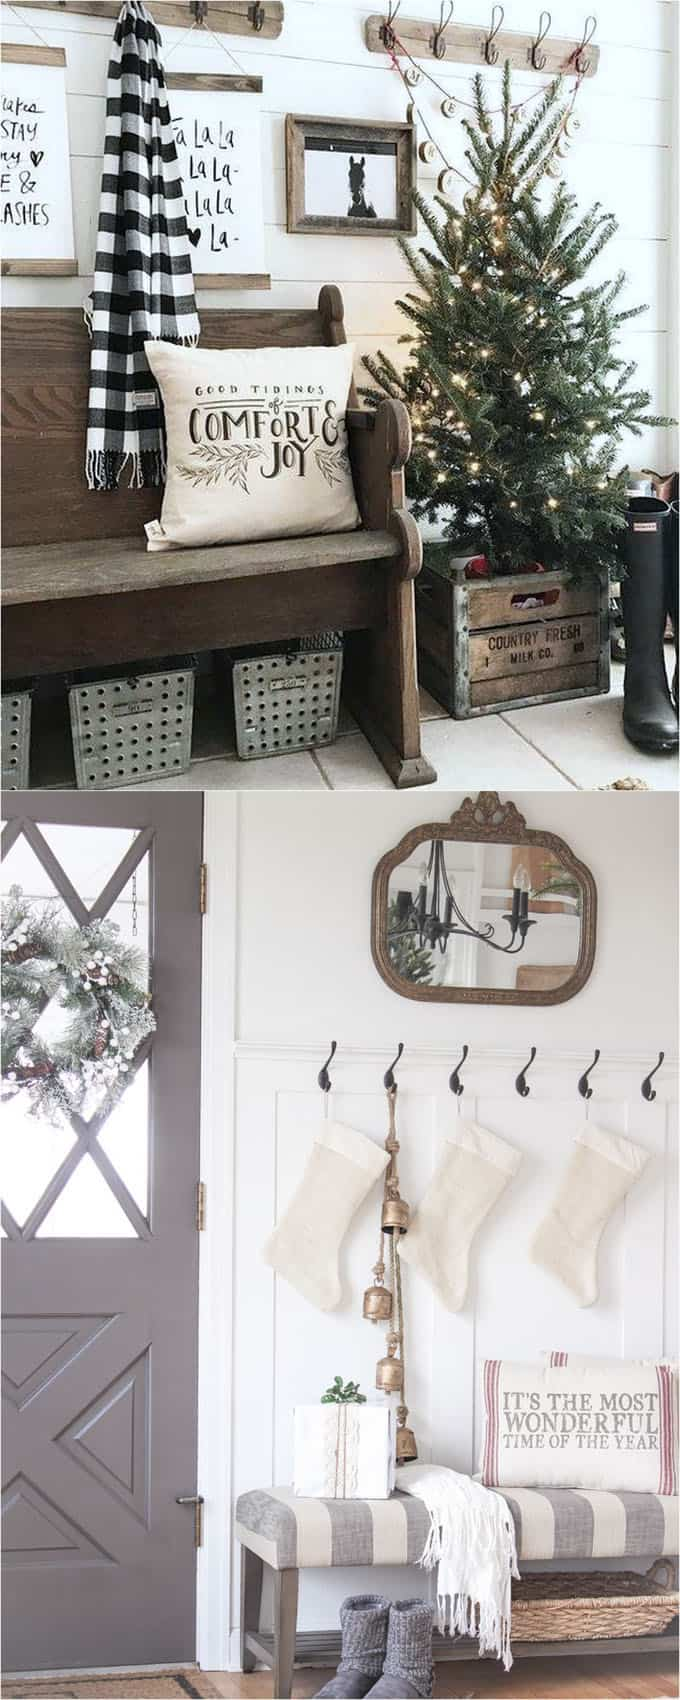 100-favorite-christmas-decorating-ideas-every-room-apieceofrainbowblog-3